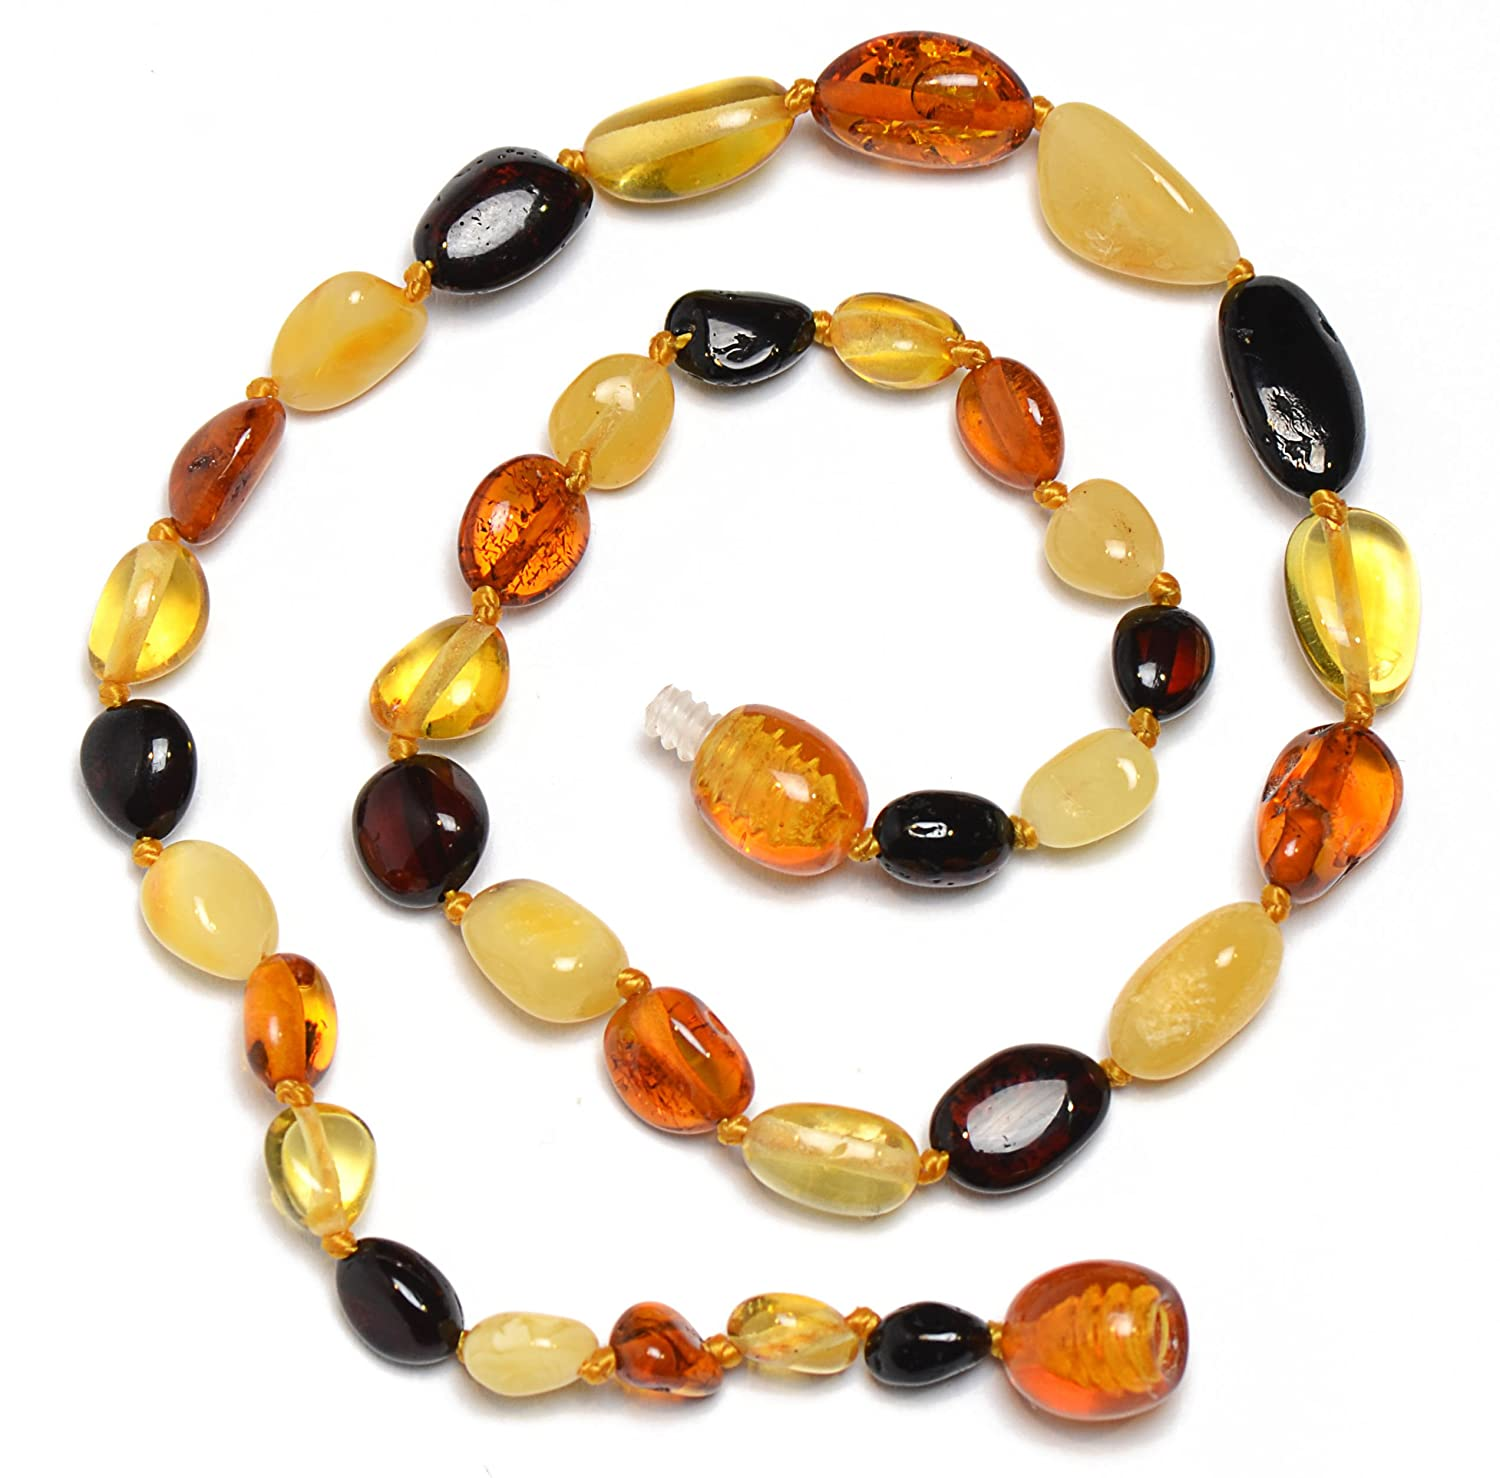 Colorful 100% Authentic Baltic Amber Teething Necklace for Baby - Safety Knotted - Genuine Baltic Amber Genuine Amber